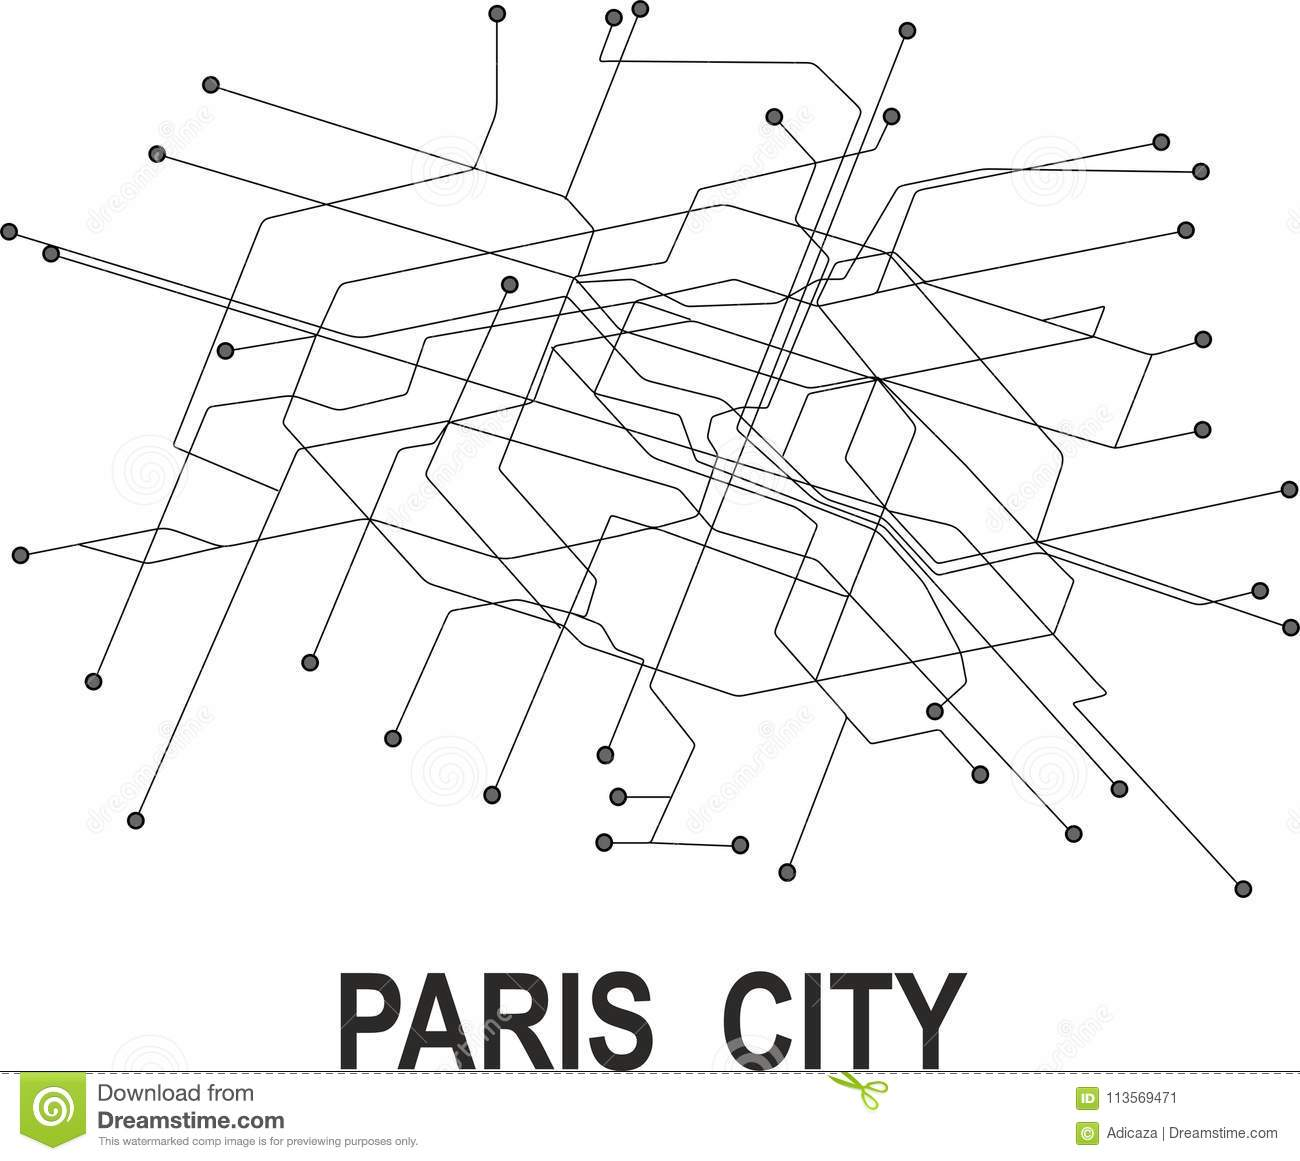 Paris City map stock vector. Illustration of metro, station - 113569471